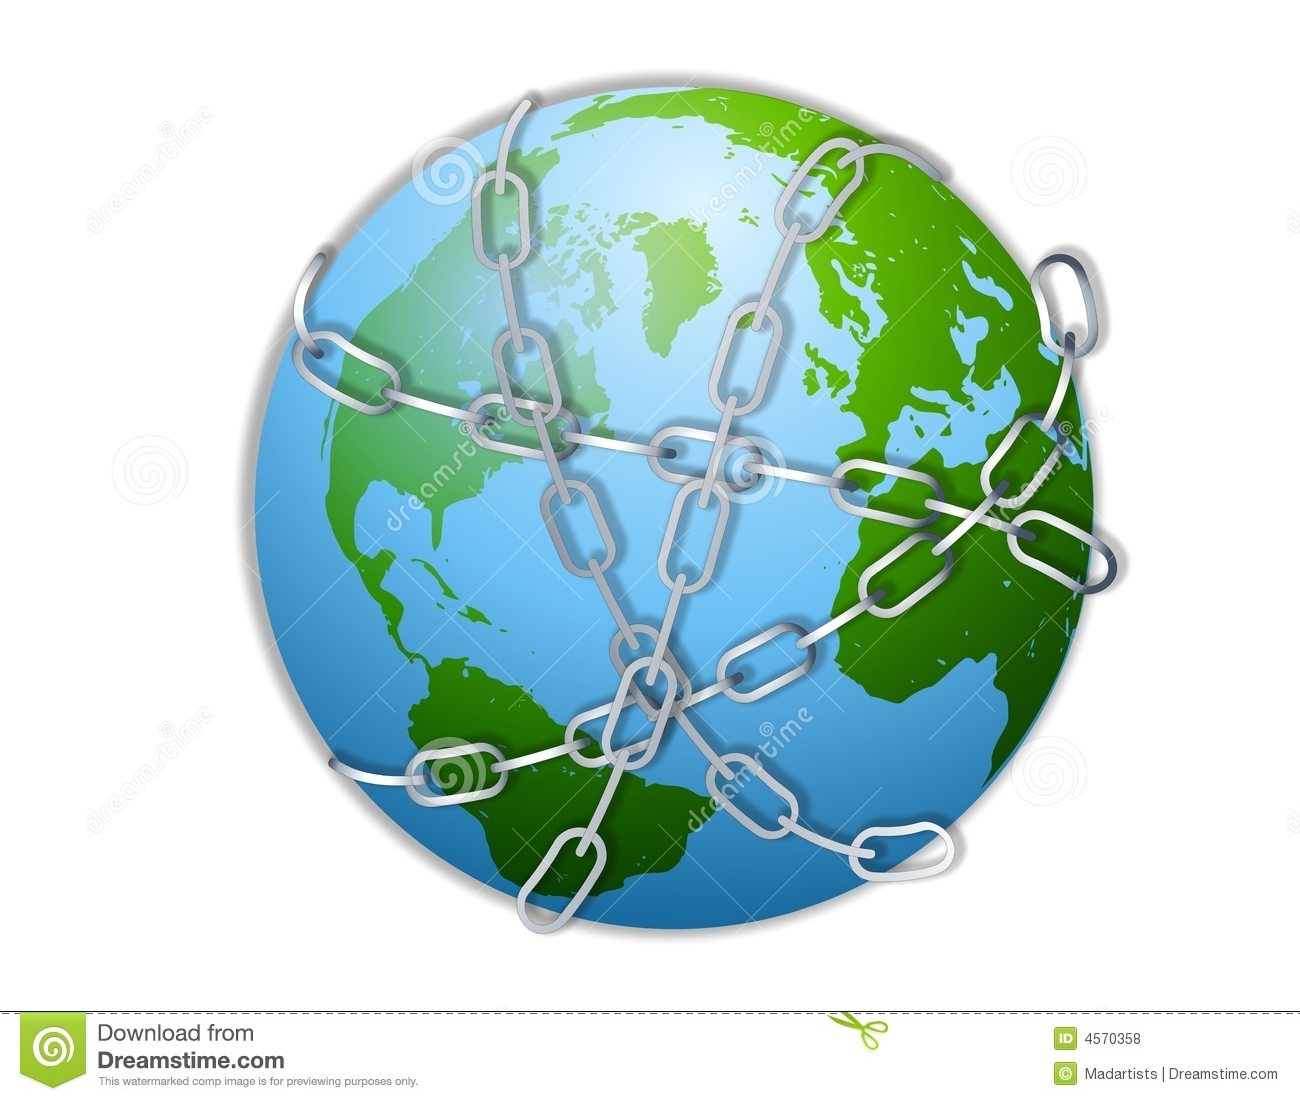 Earth Wrapped In Chains Royalty Free Stock Photos - Image: 4570358